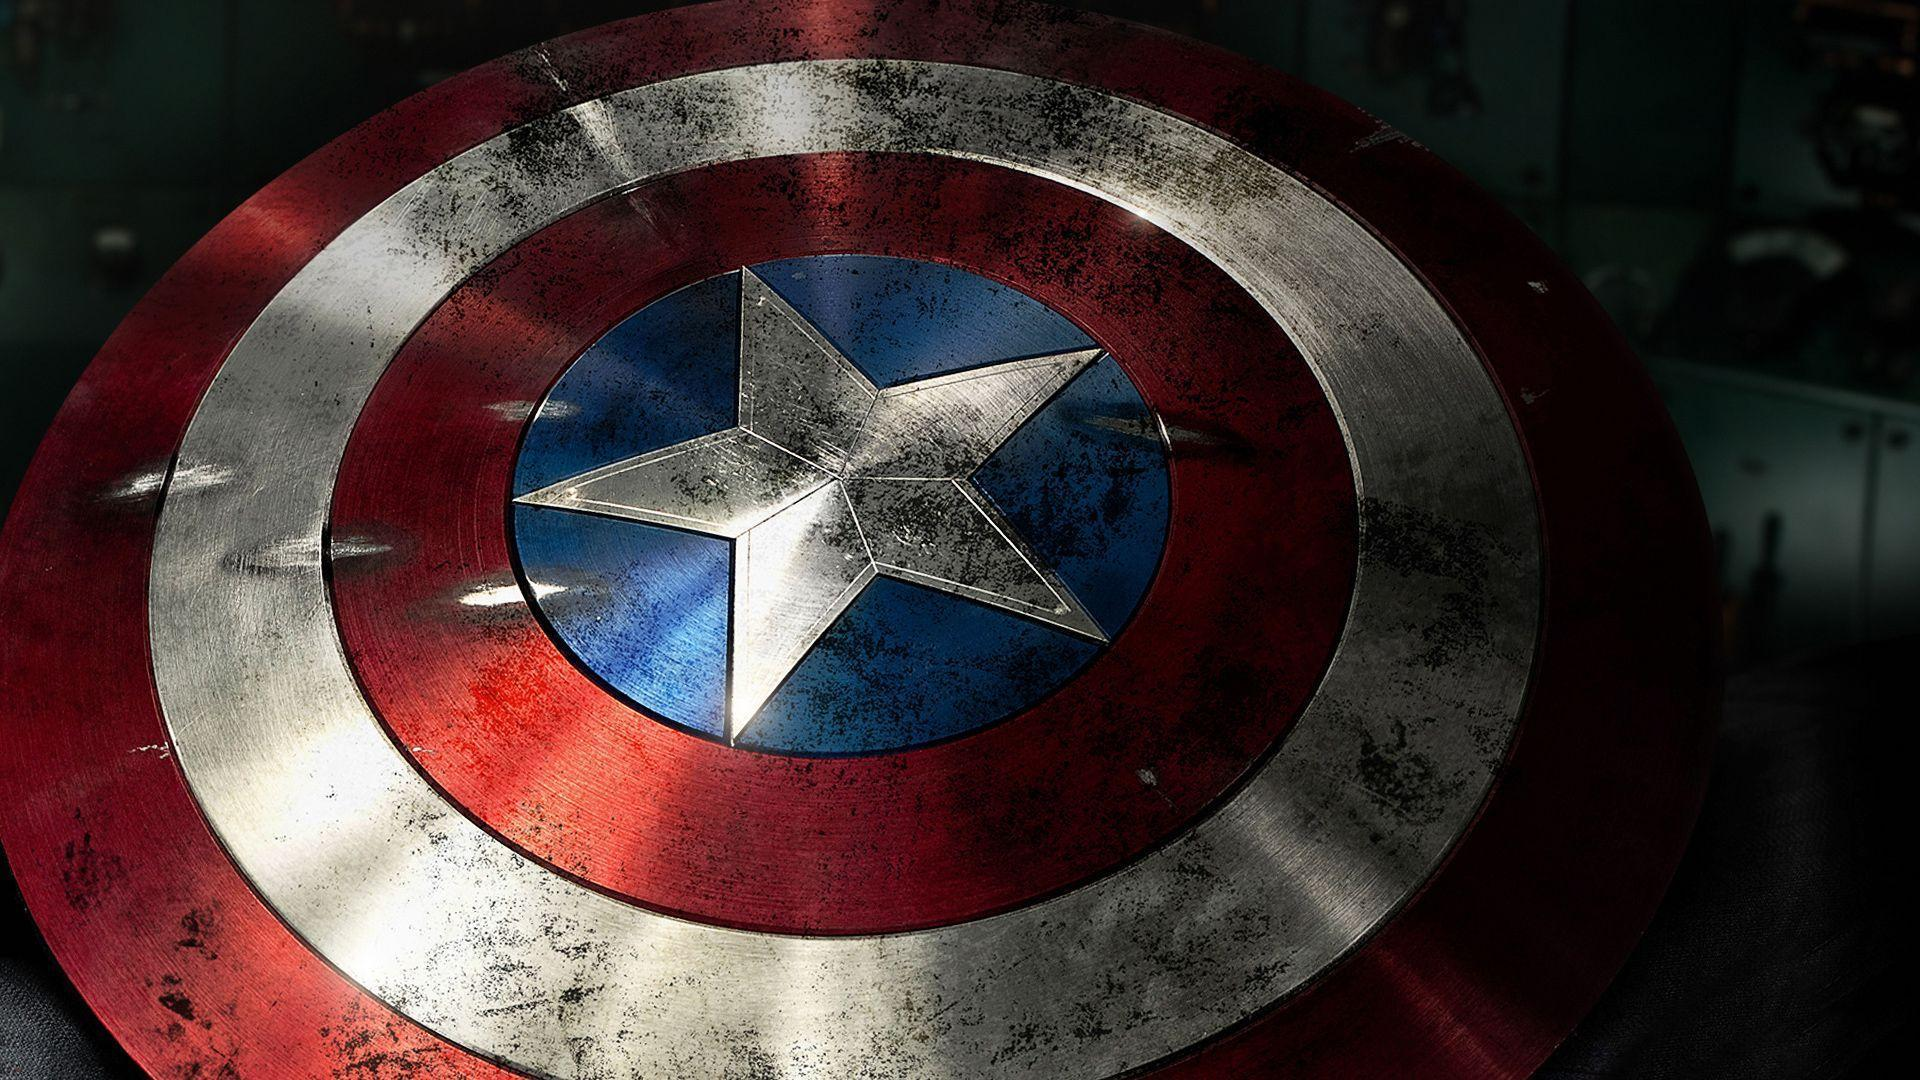 Captain america hd wallpapers wallpaper cave - Captain america hd images download ...